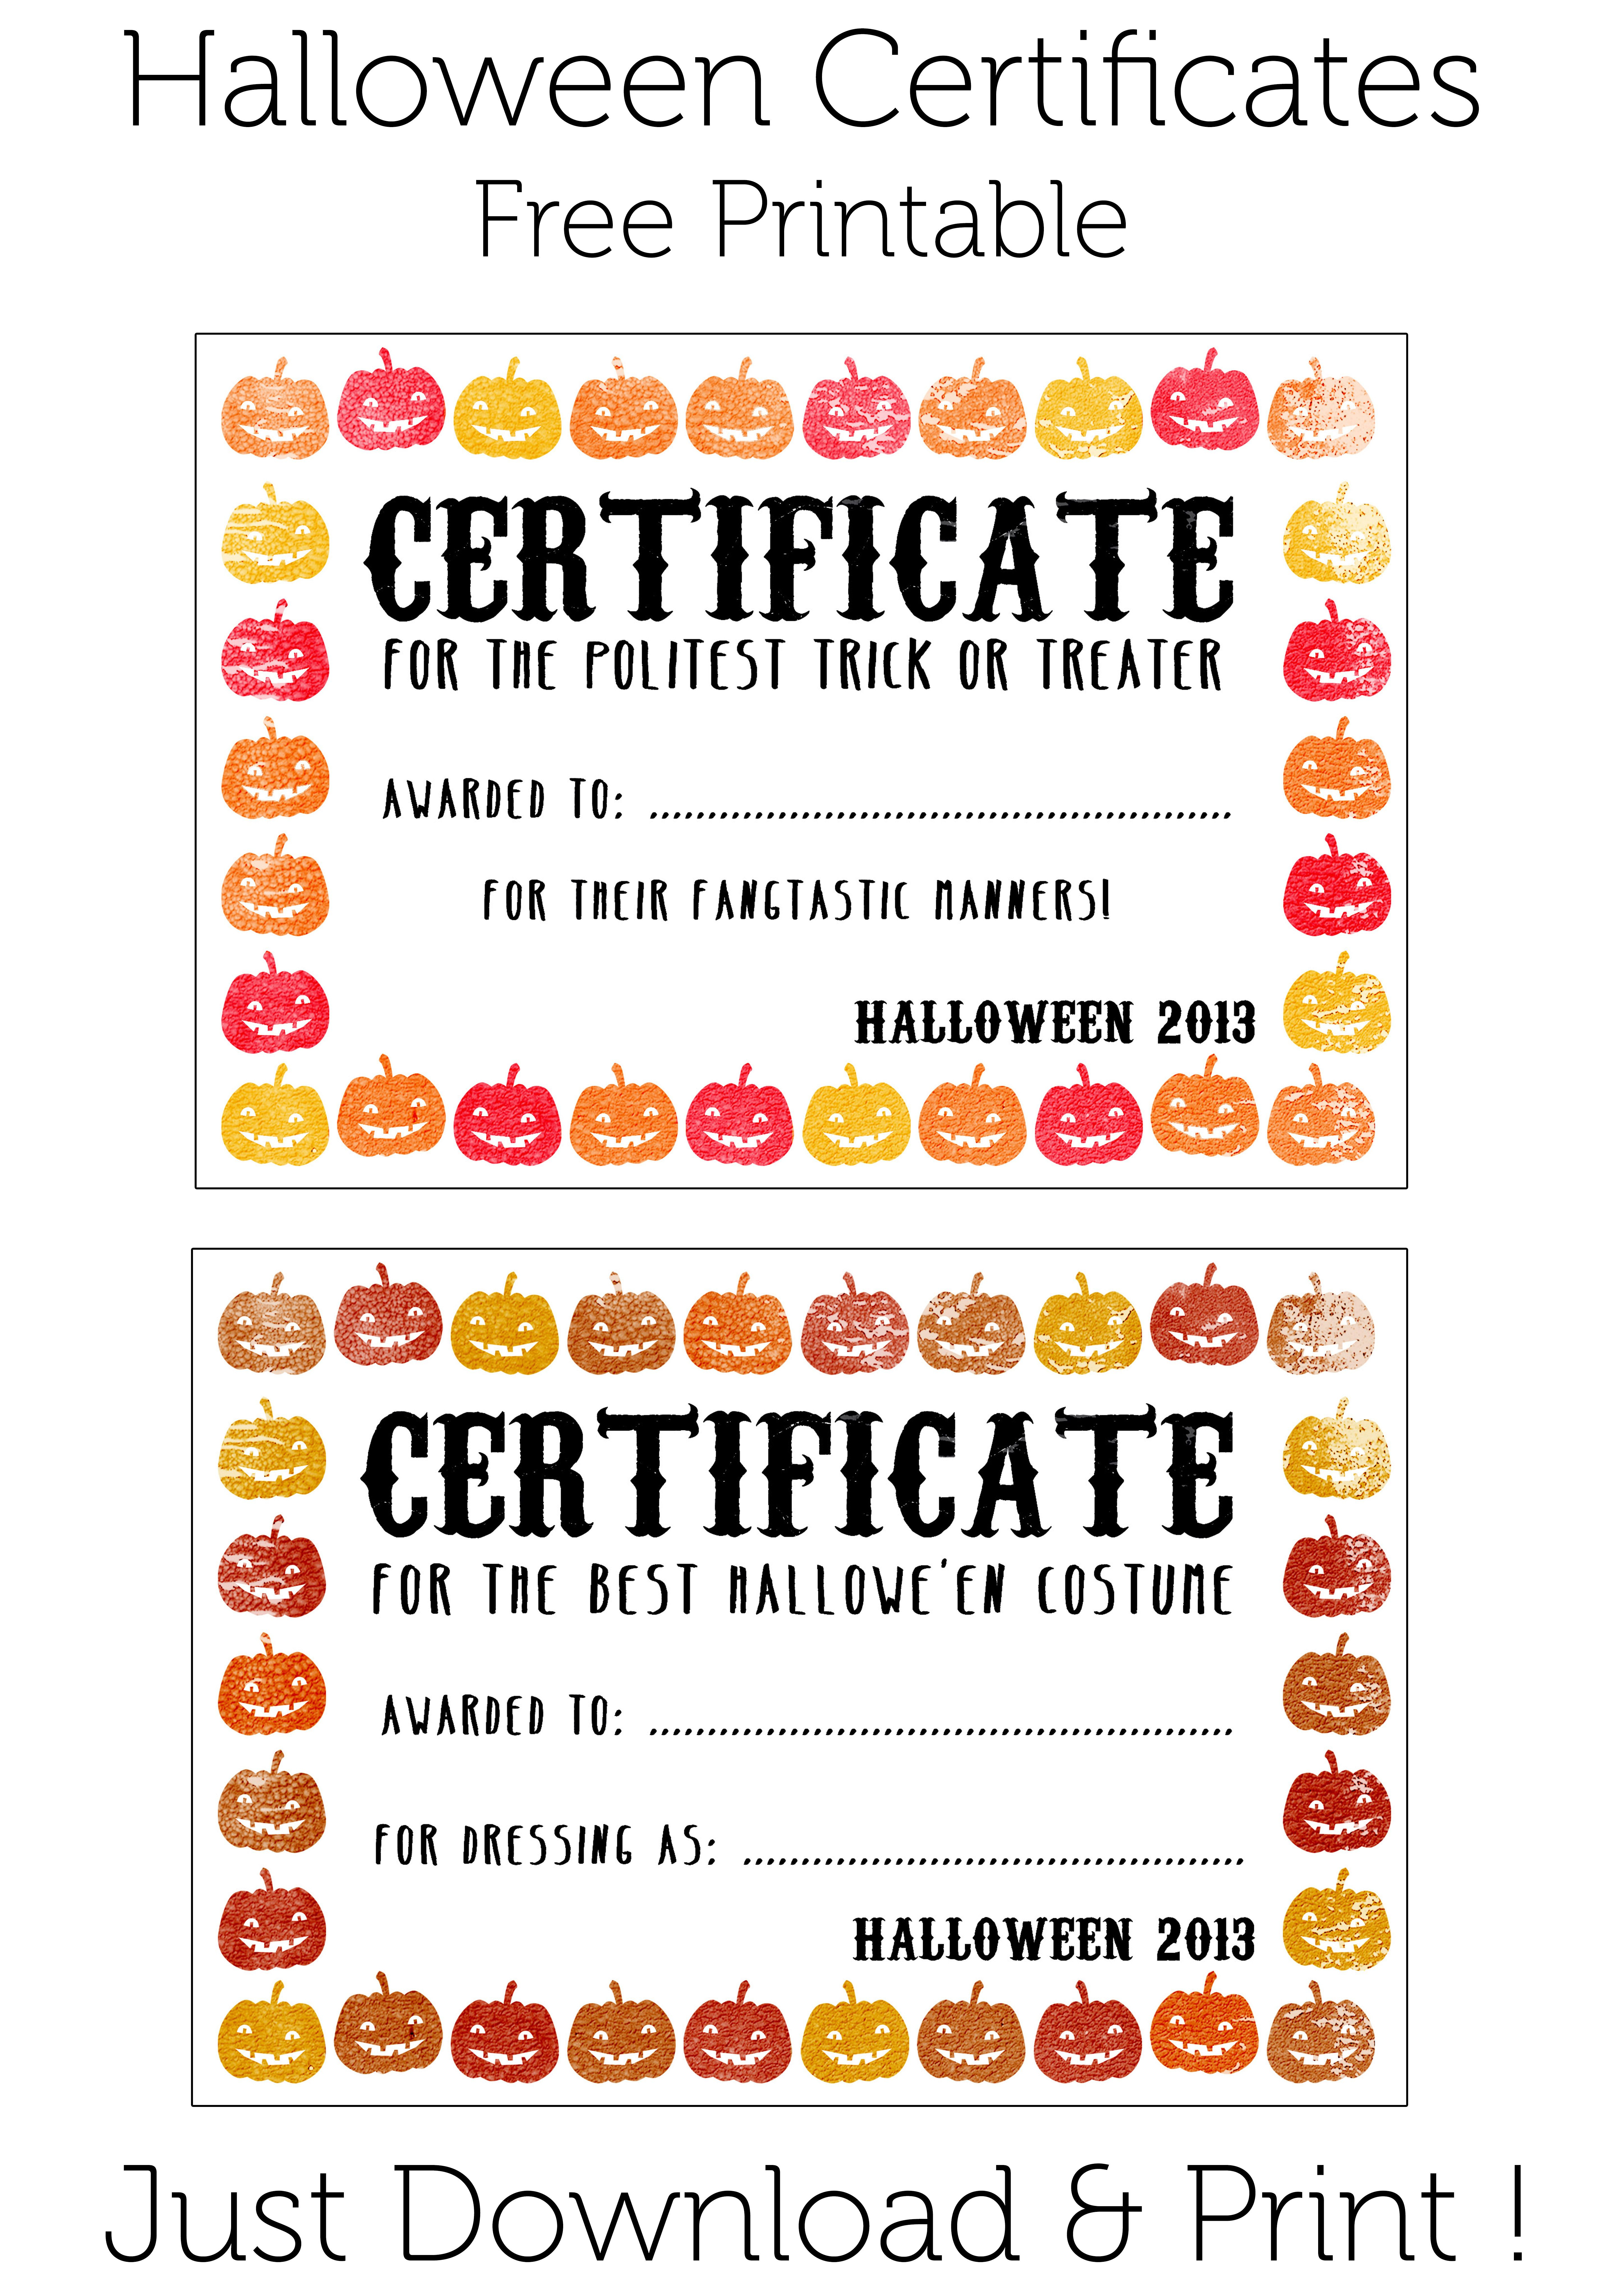 Halloween Certificates ! Give Them Out To Trick O' Treaters As Well - Free Printable Halloween Award Certificates